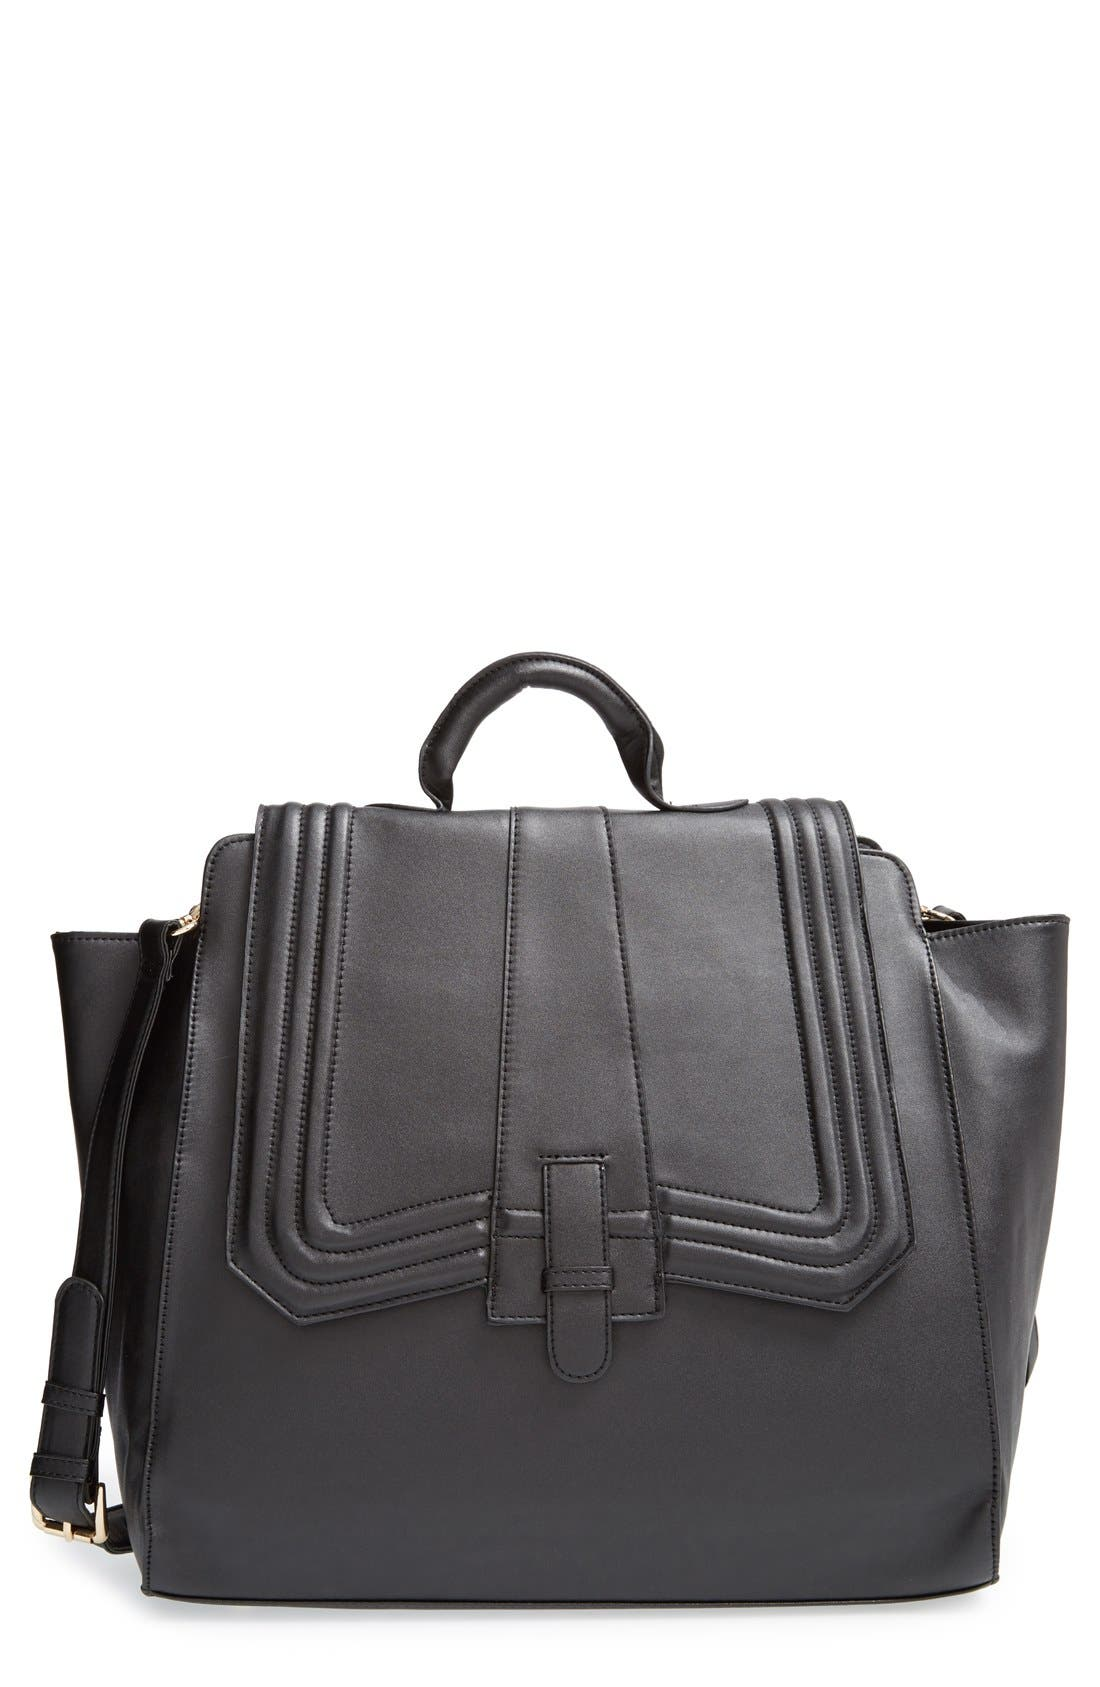 Alternate Image 1 Selected - Sole Society 'Ronan' Oversize Tote